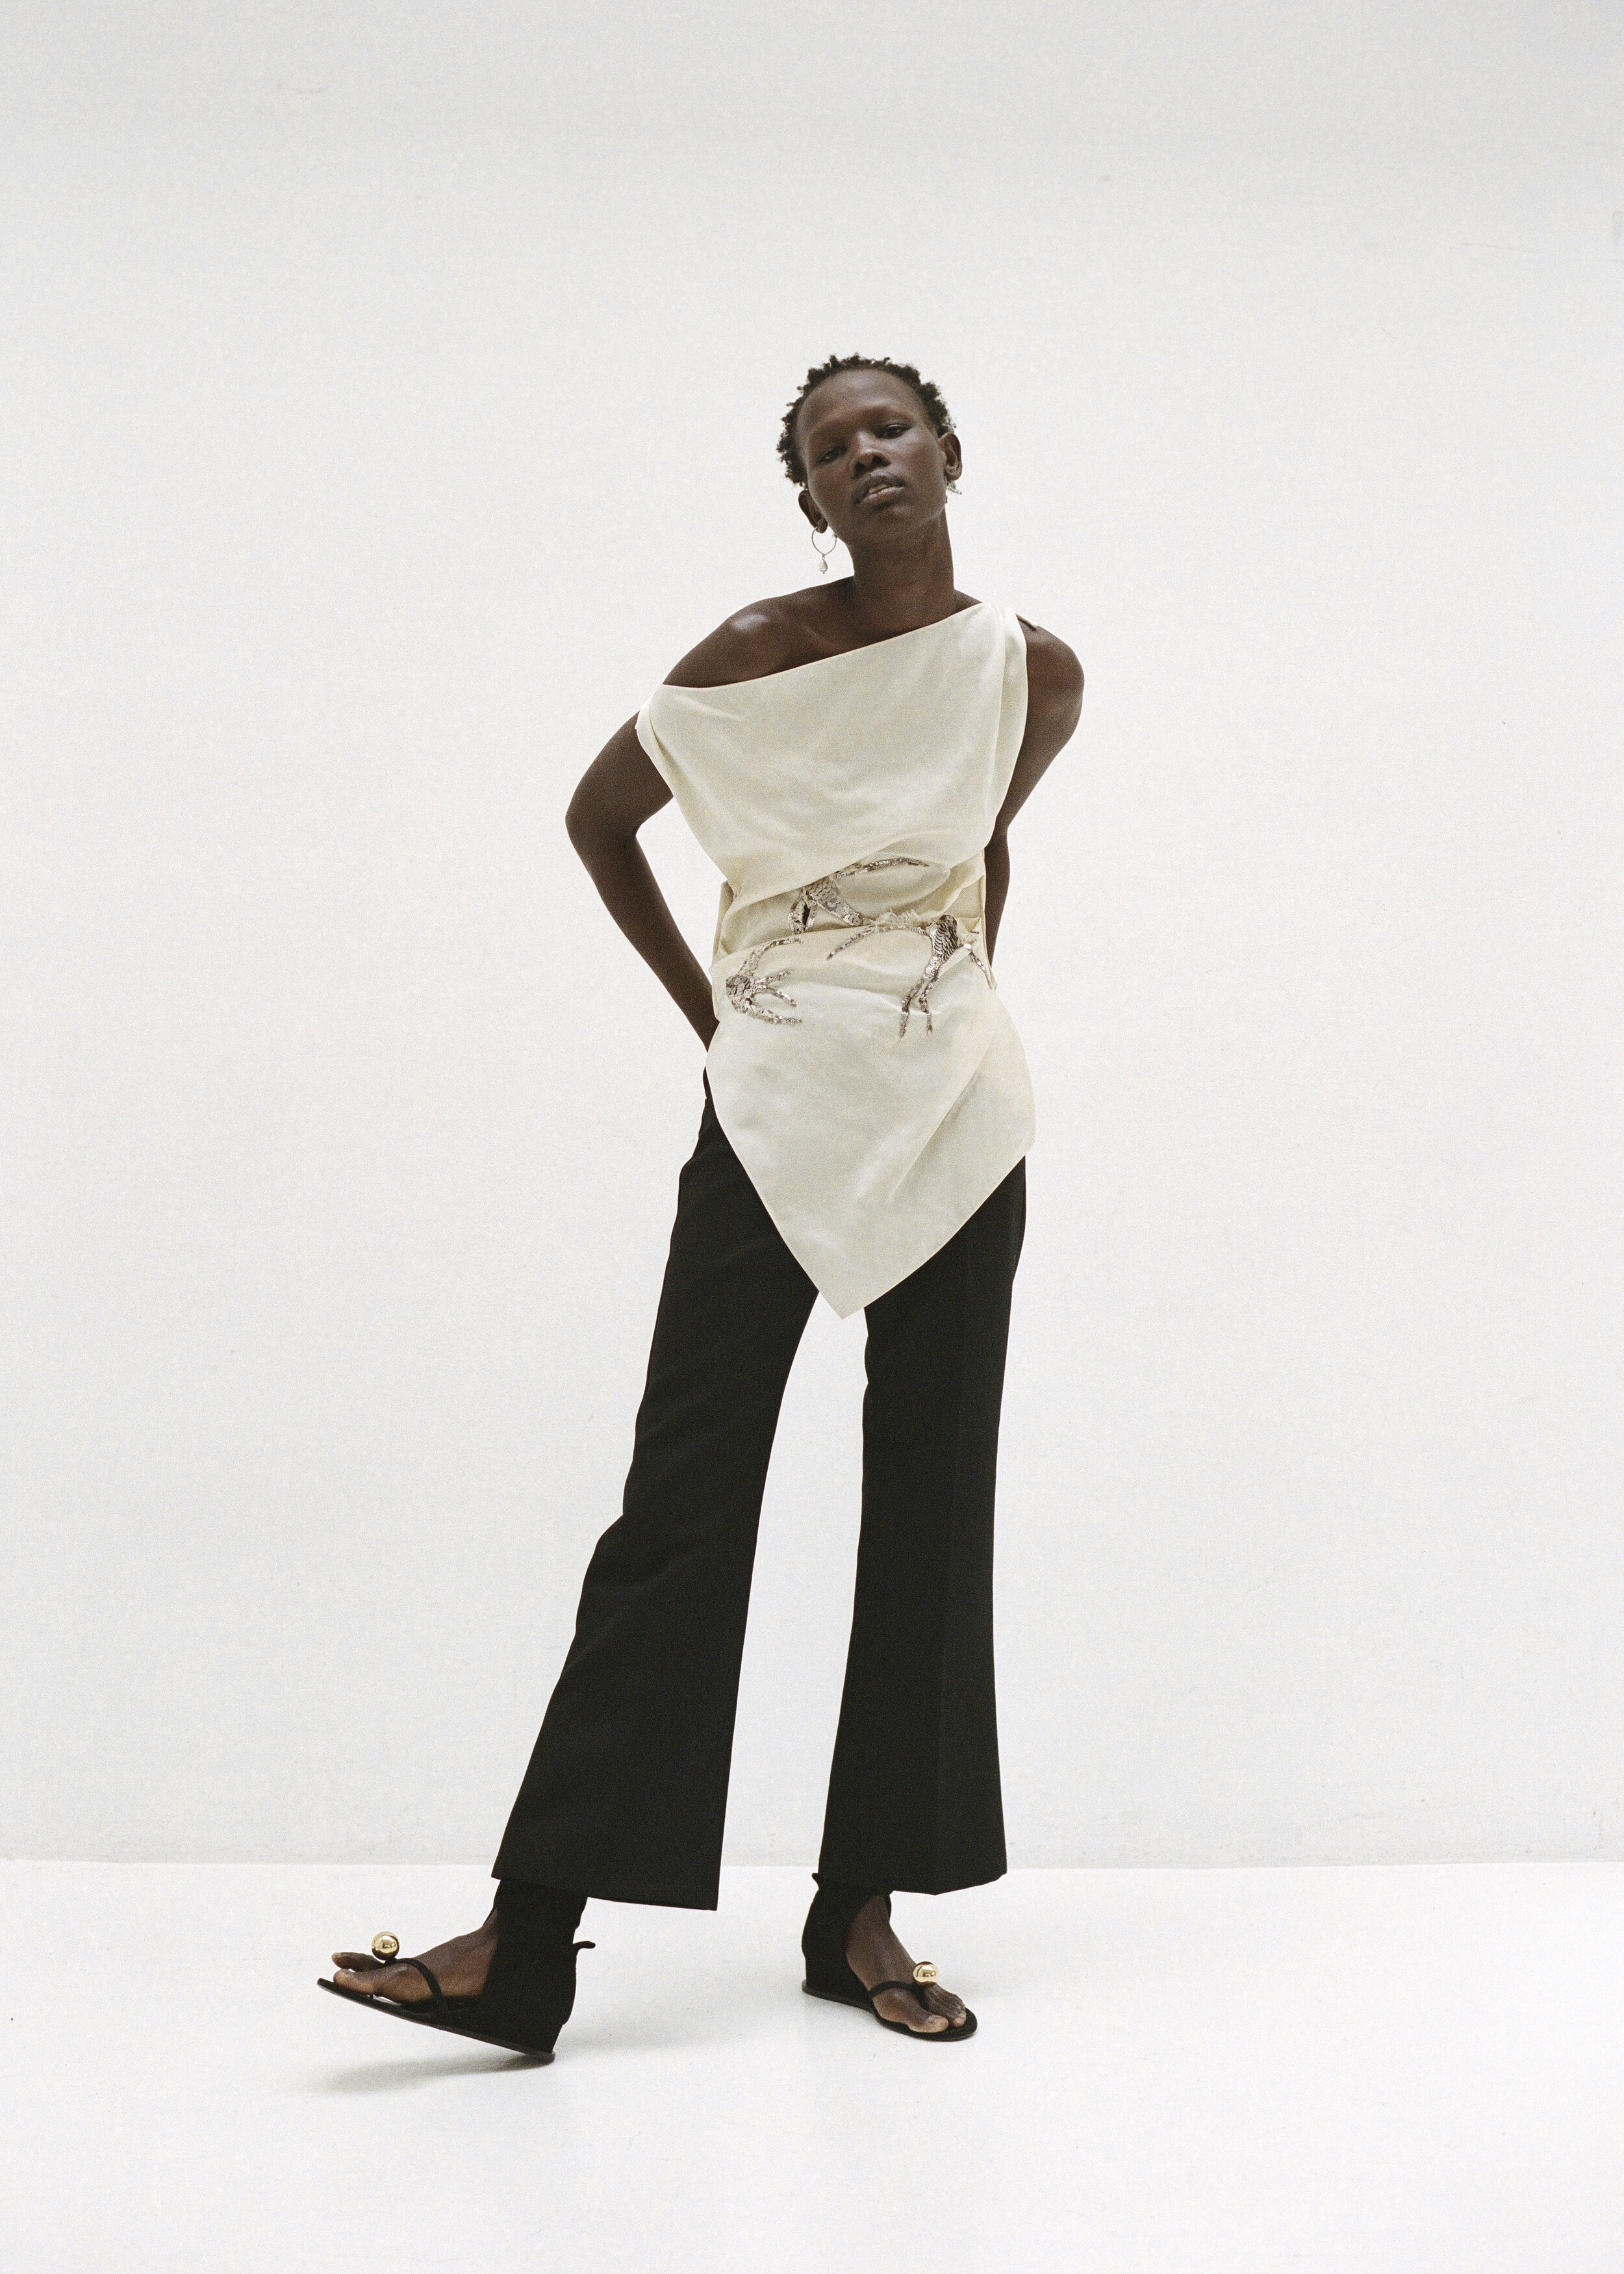 Shanelle-Nyasiase-by-Mark-Rabadan-Collection-Issue 5.jpg